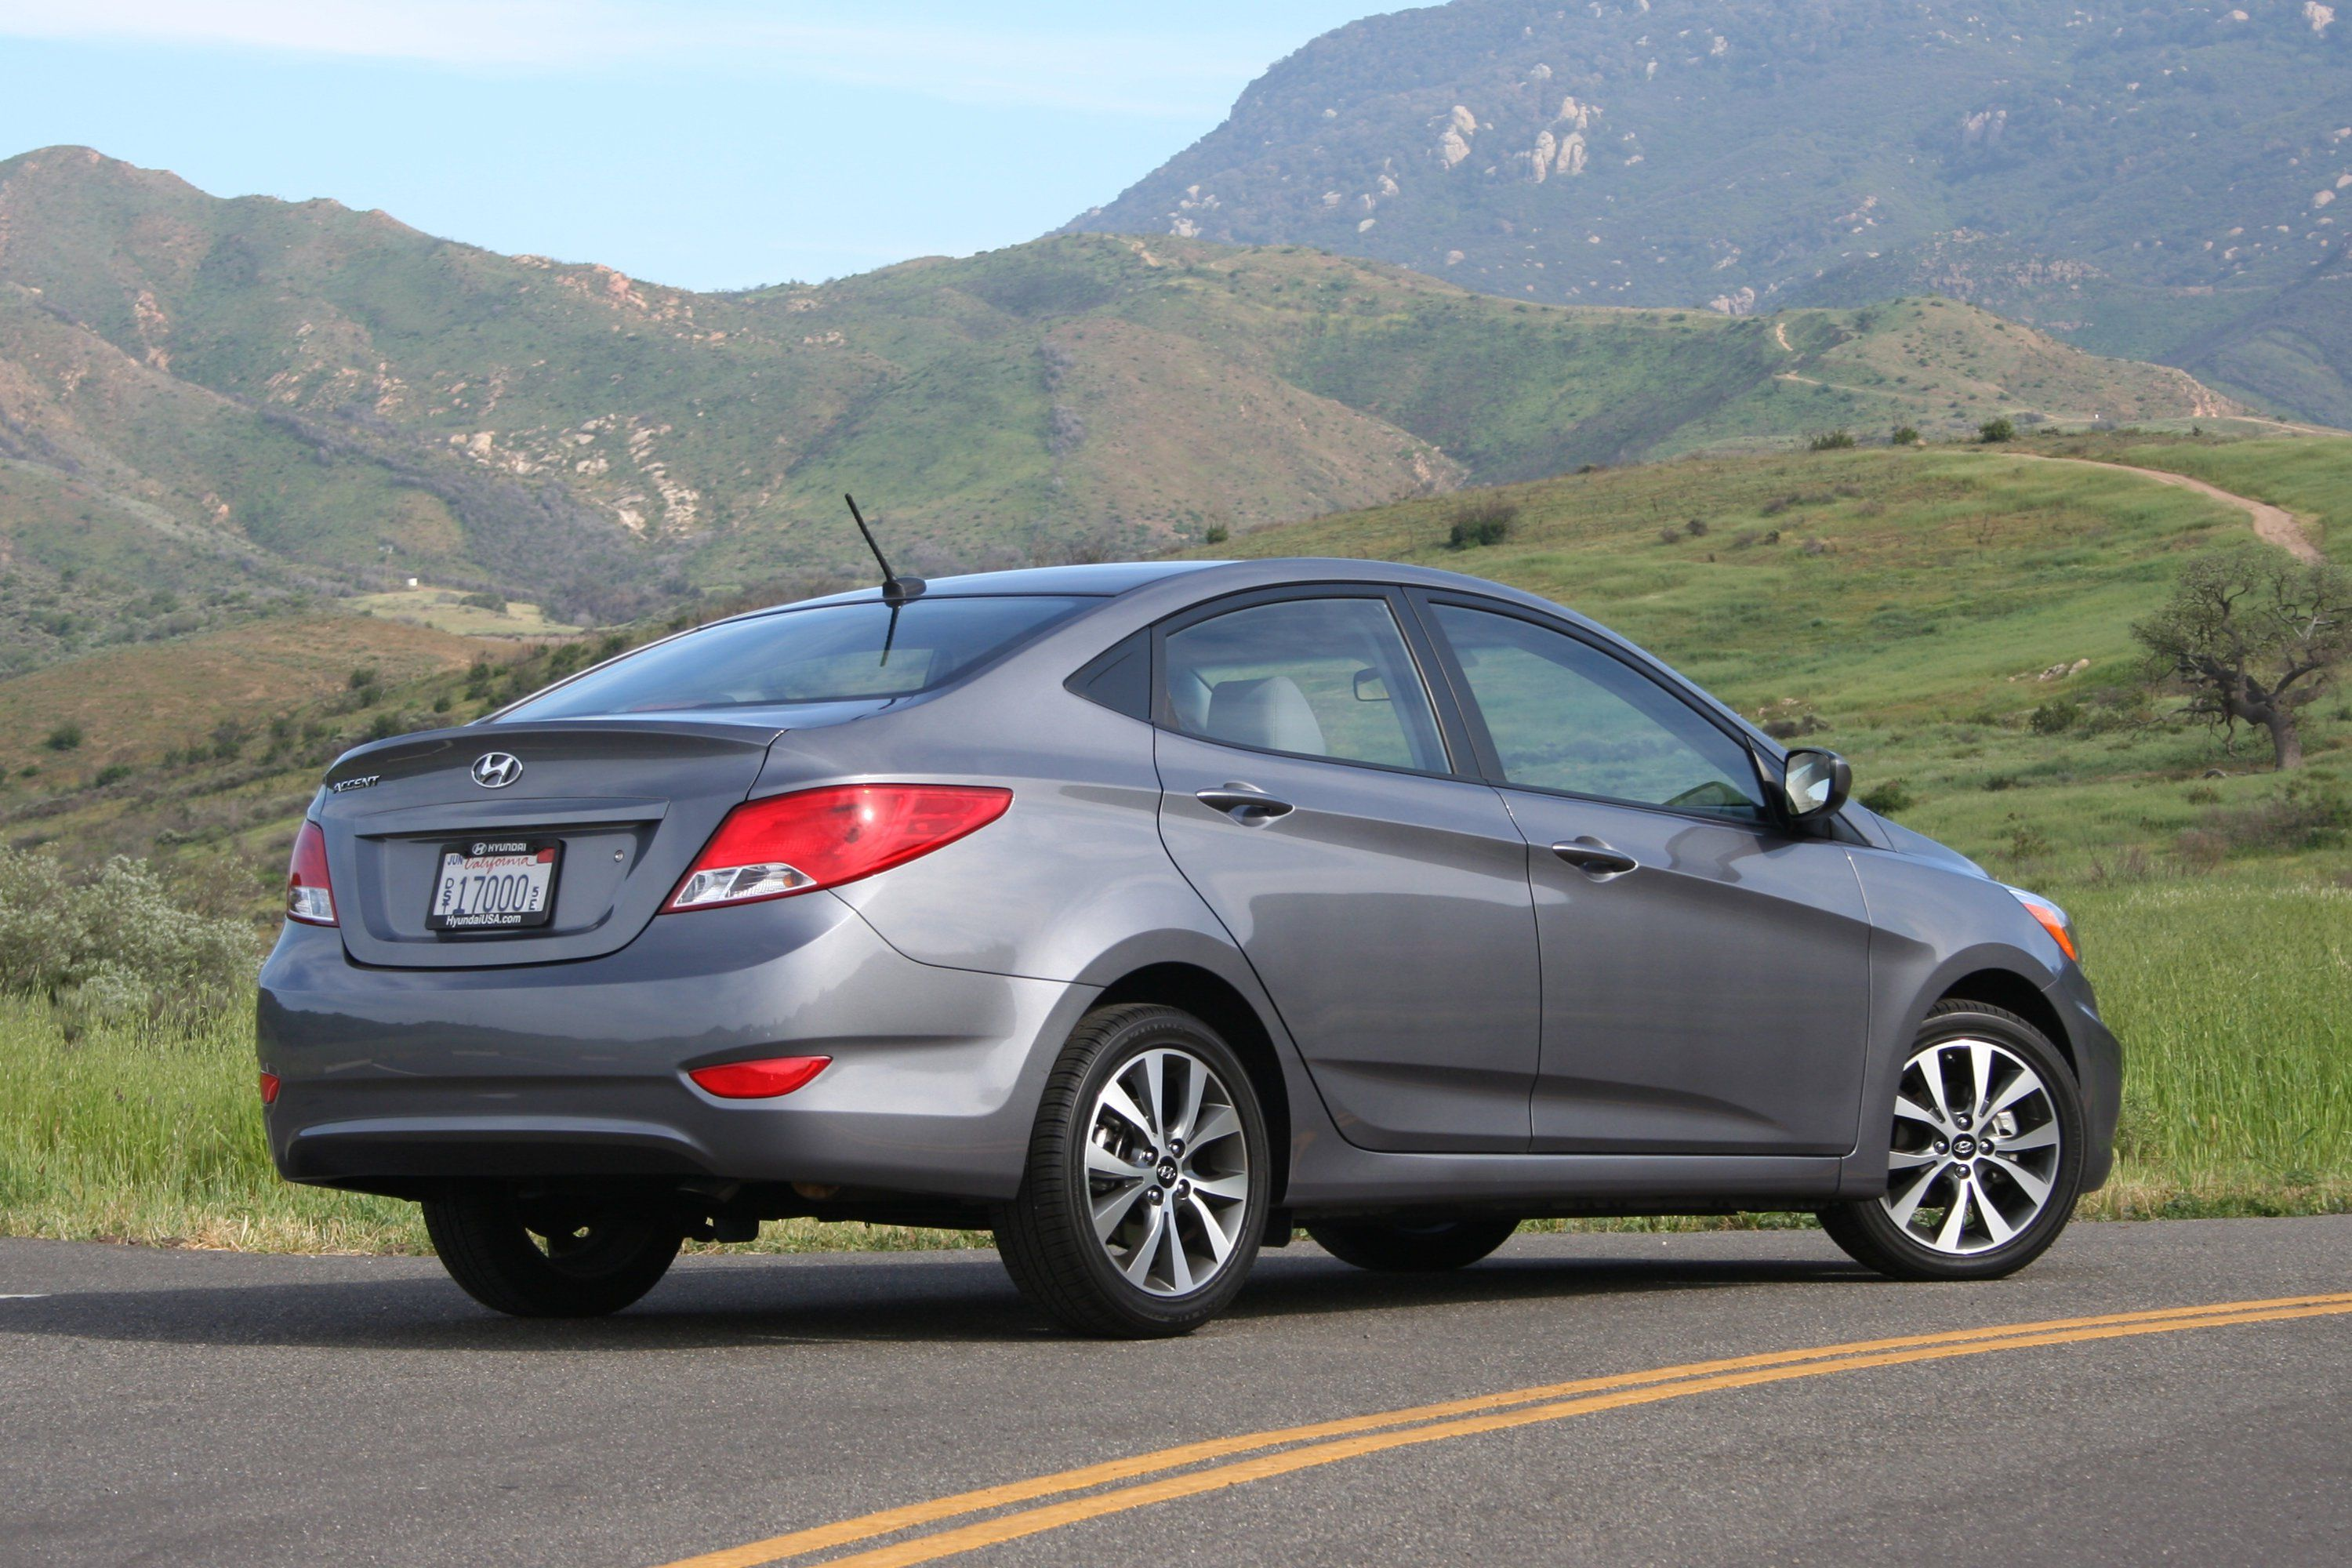 Hyundai Accent Wallpapers Top Free Hyundai Accent Backgrounds Wallpaperaccess